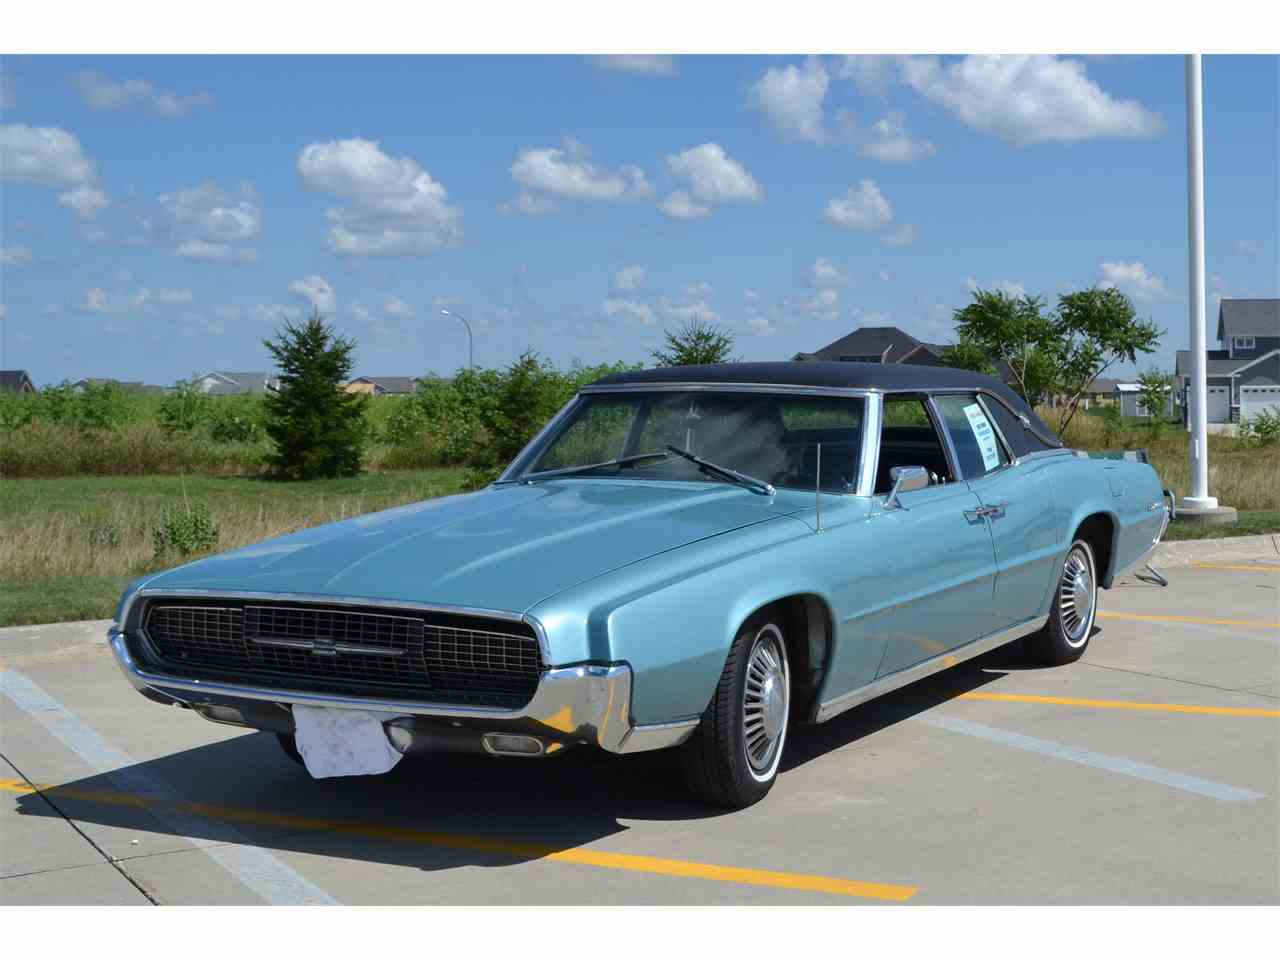 Listing All Cars >> 1967 Ford Thunderbird for Sale | ClassicCars.com | CC-1004558